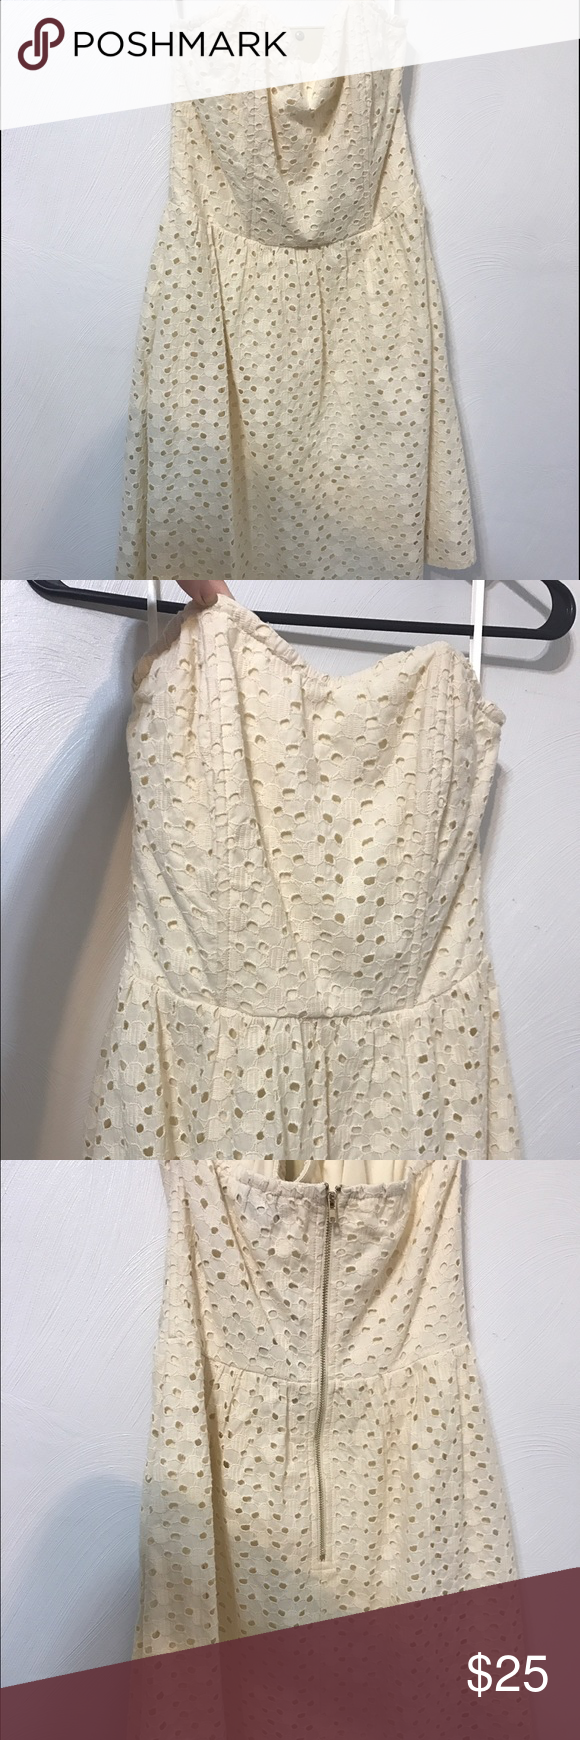 Francesca's strapless eyelet dress New with tags. Pretty strapless dress. No occasions to wear it. Knee length Francesca's Collections Dresses